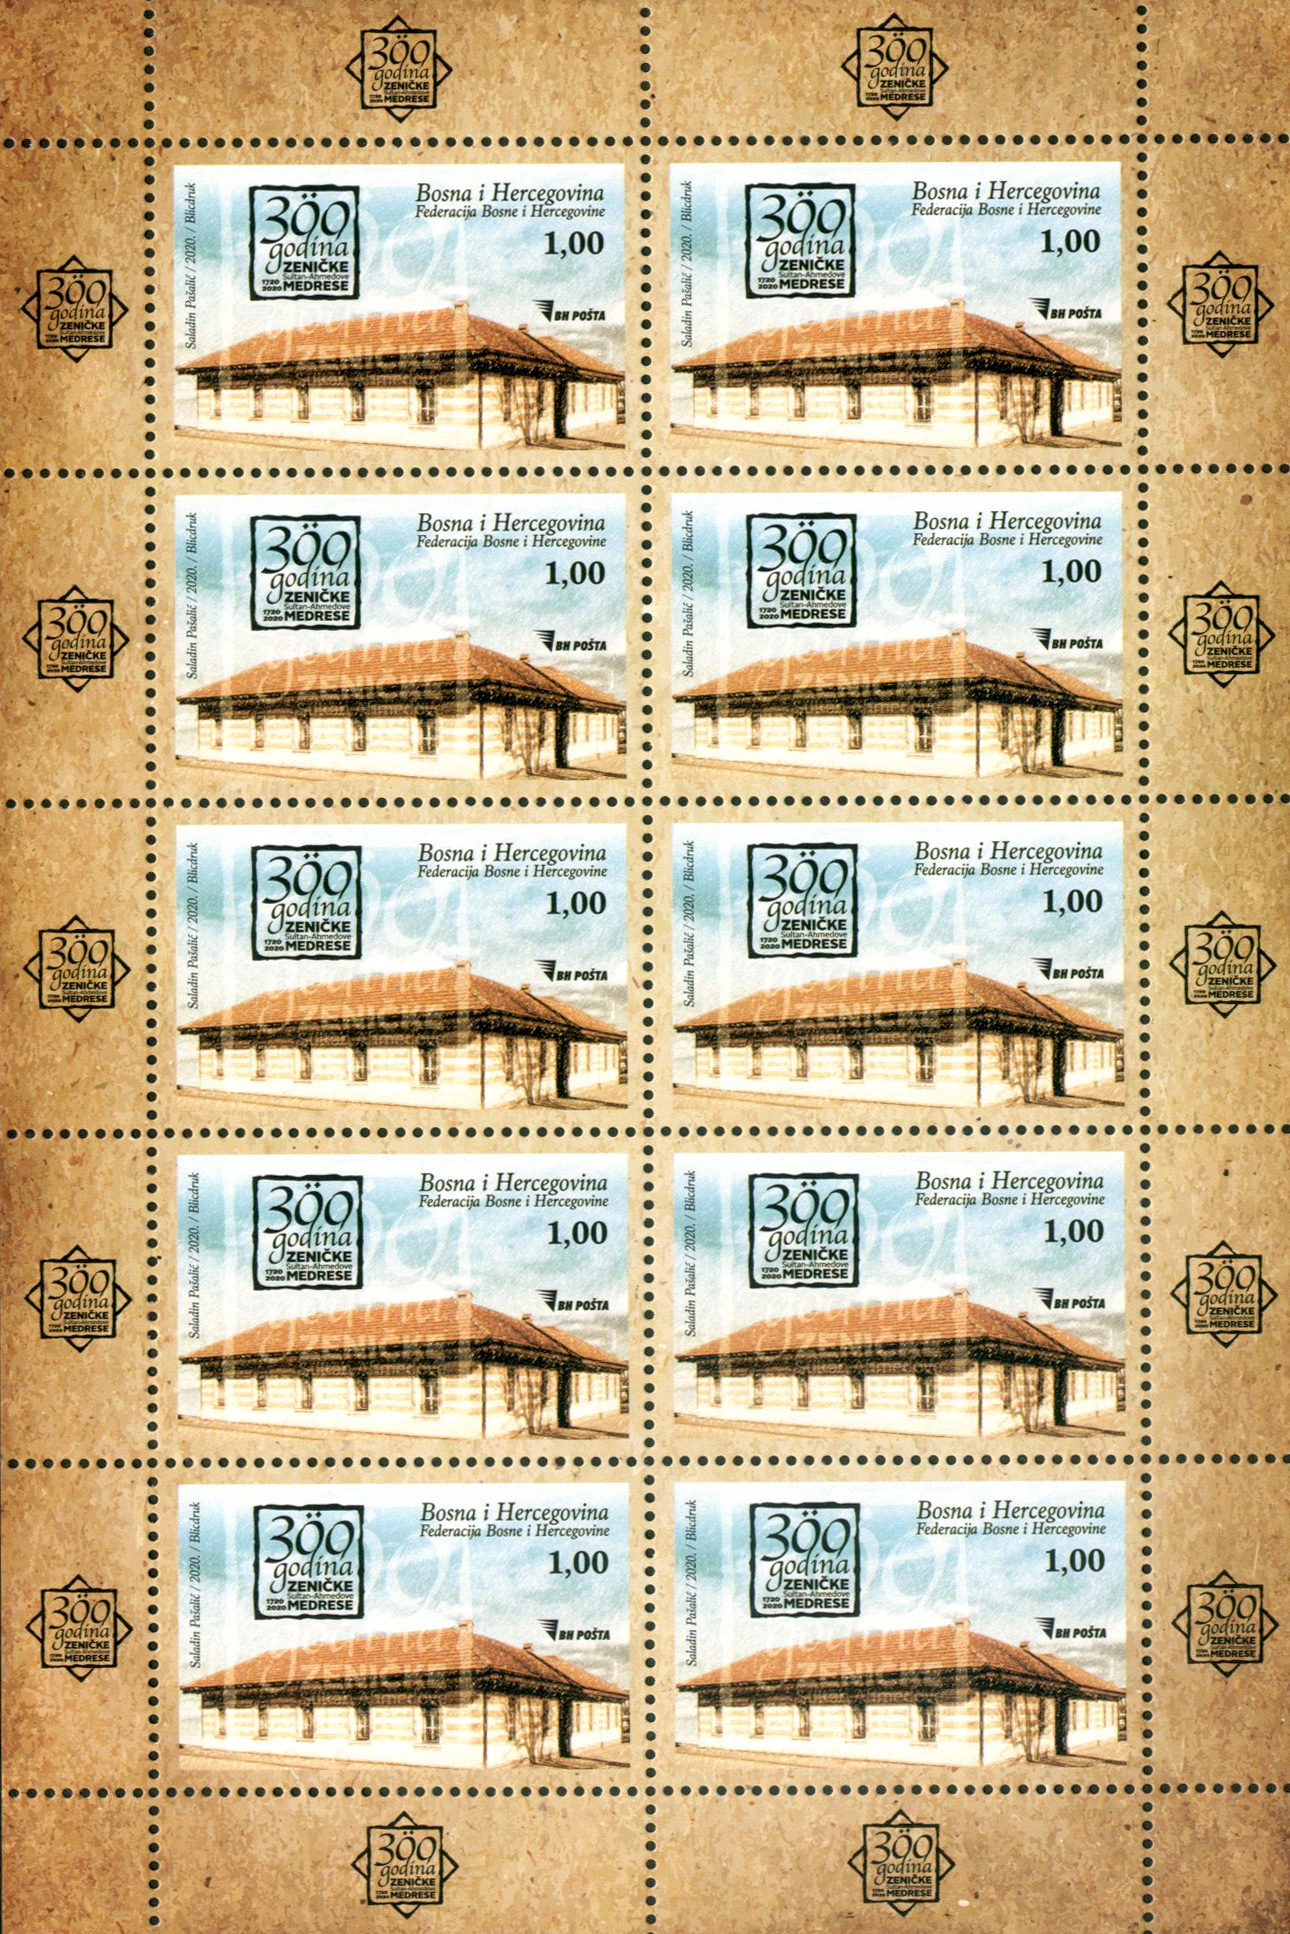 a-special-postage-stamp-300-years-of-zenicas